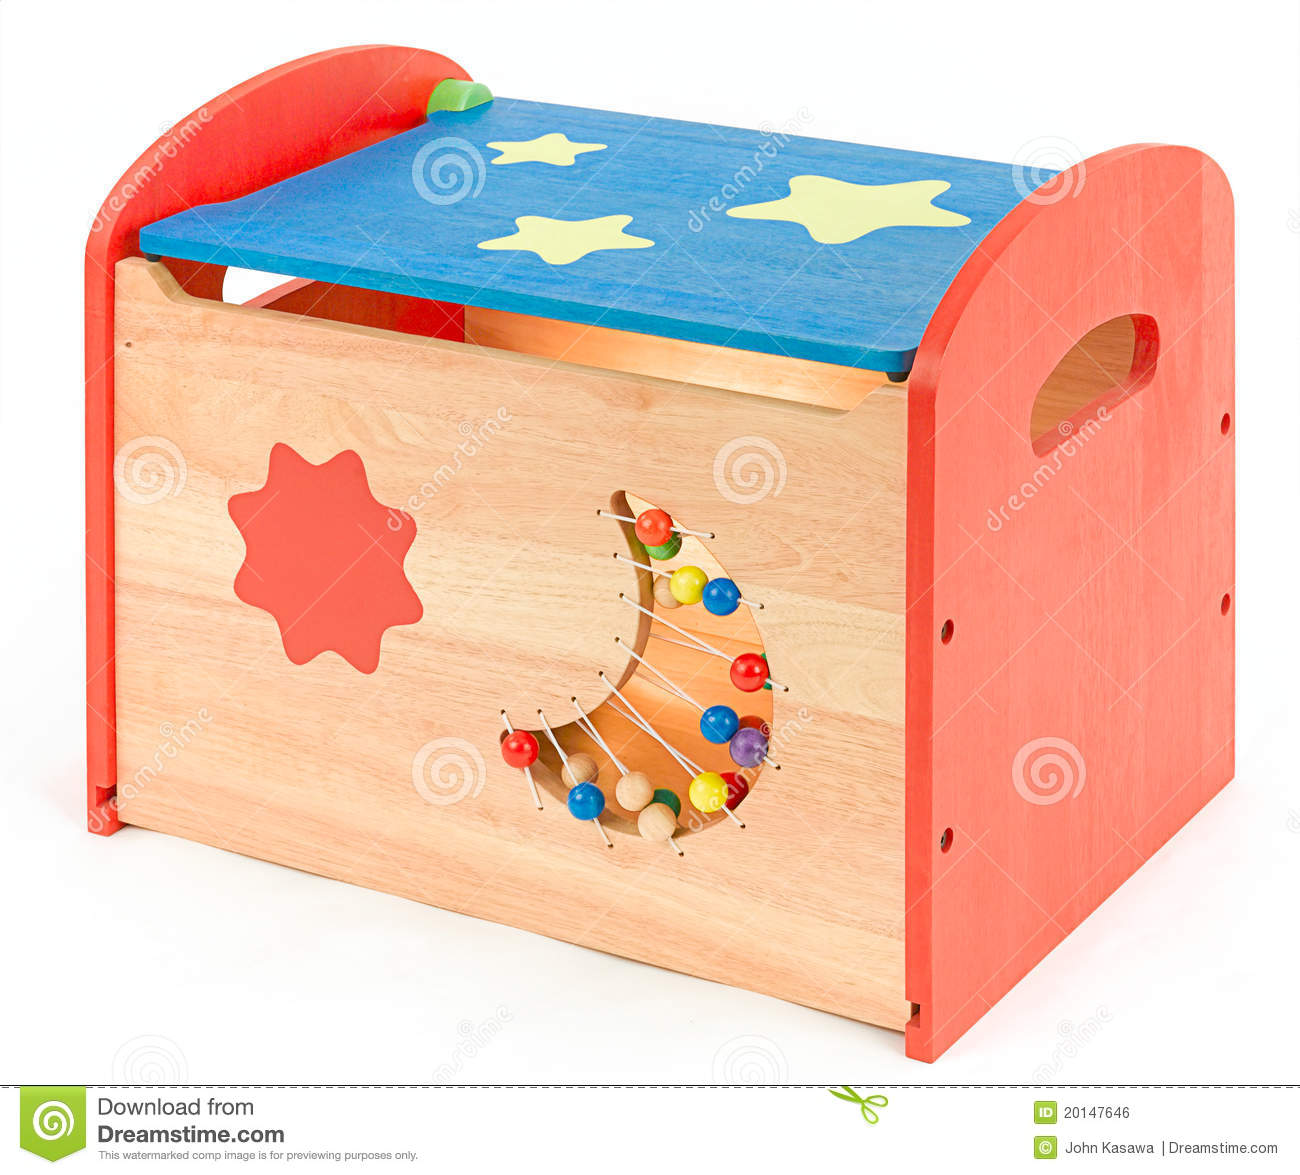 Colorful Toy Box For Kids Royalty Free Stock Image - Image: 20147646